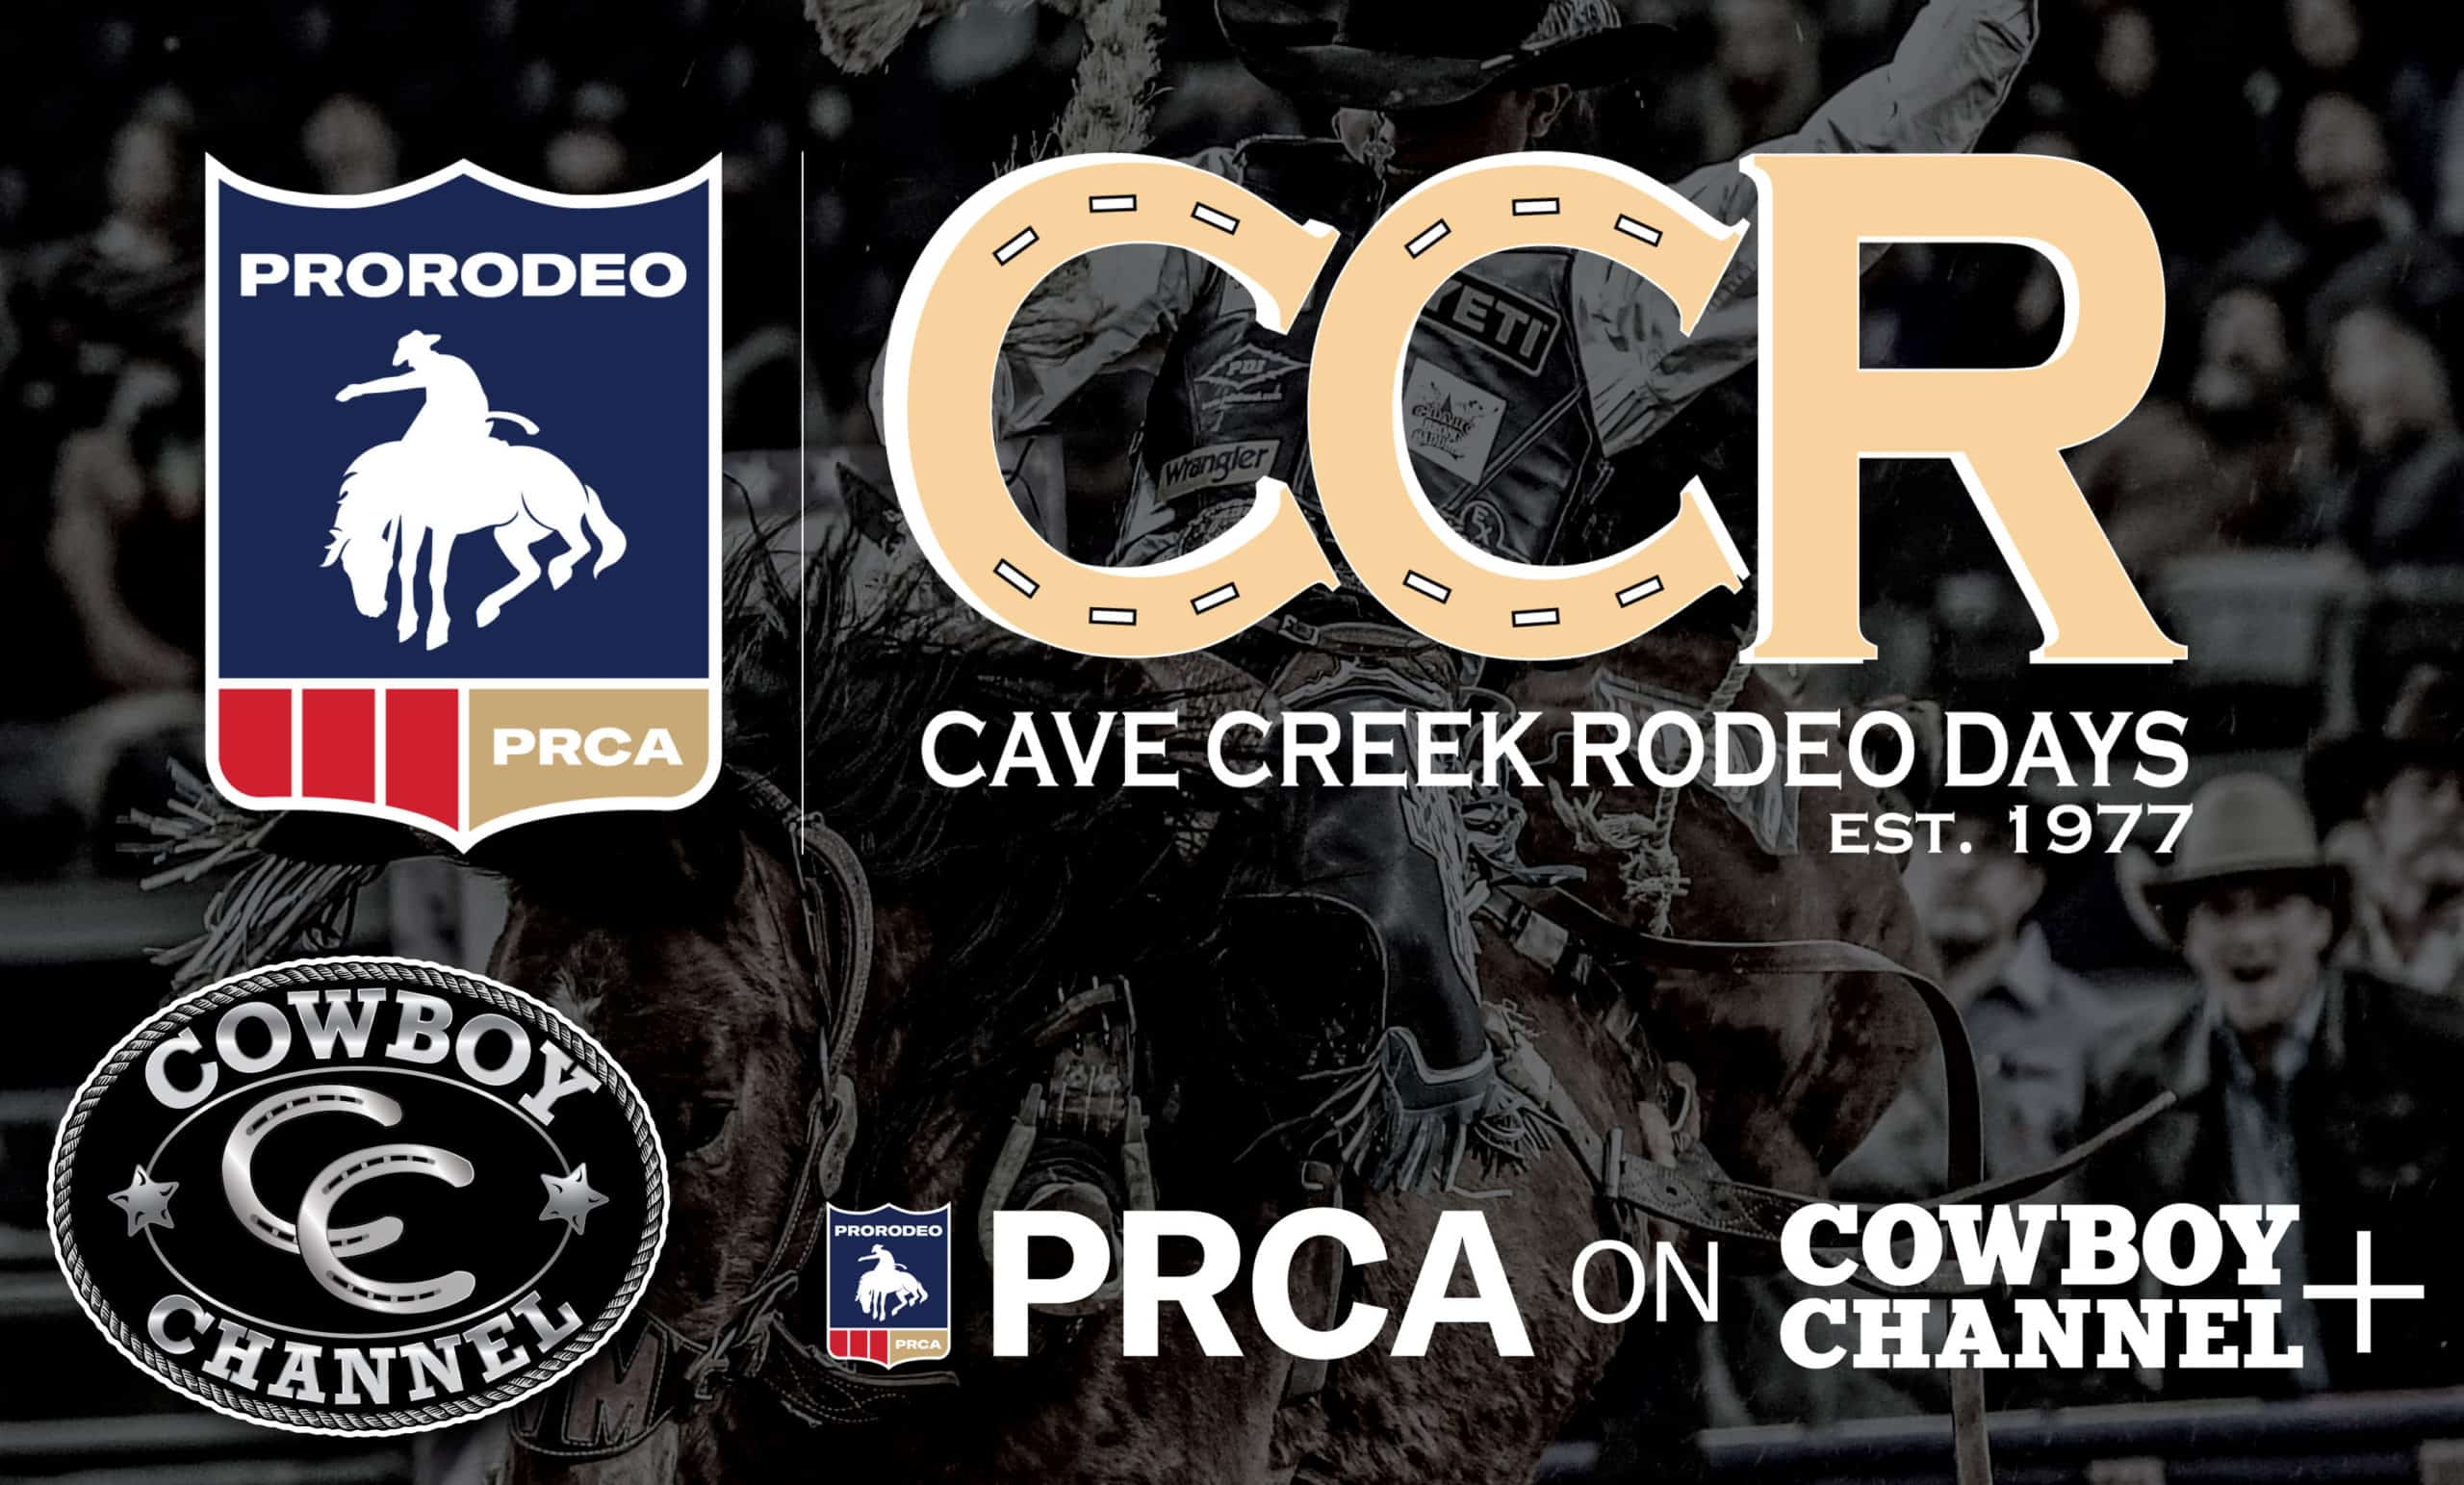 cave creek rodeo days the cowboy channel live coverage cowgirl magazine